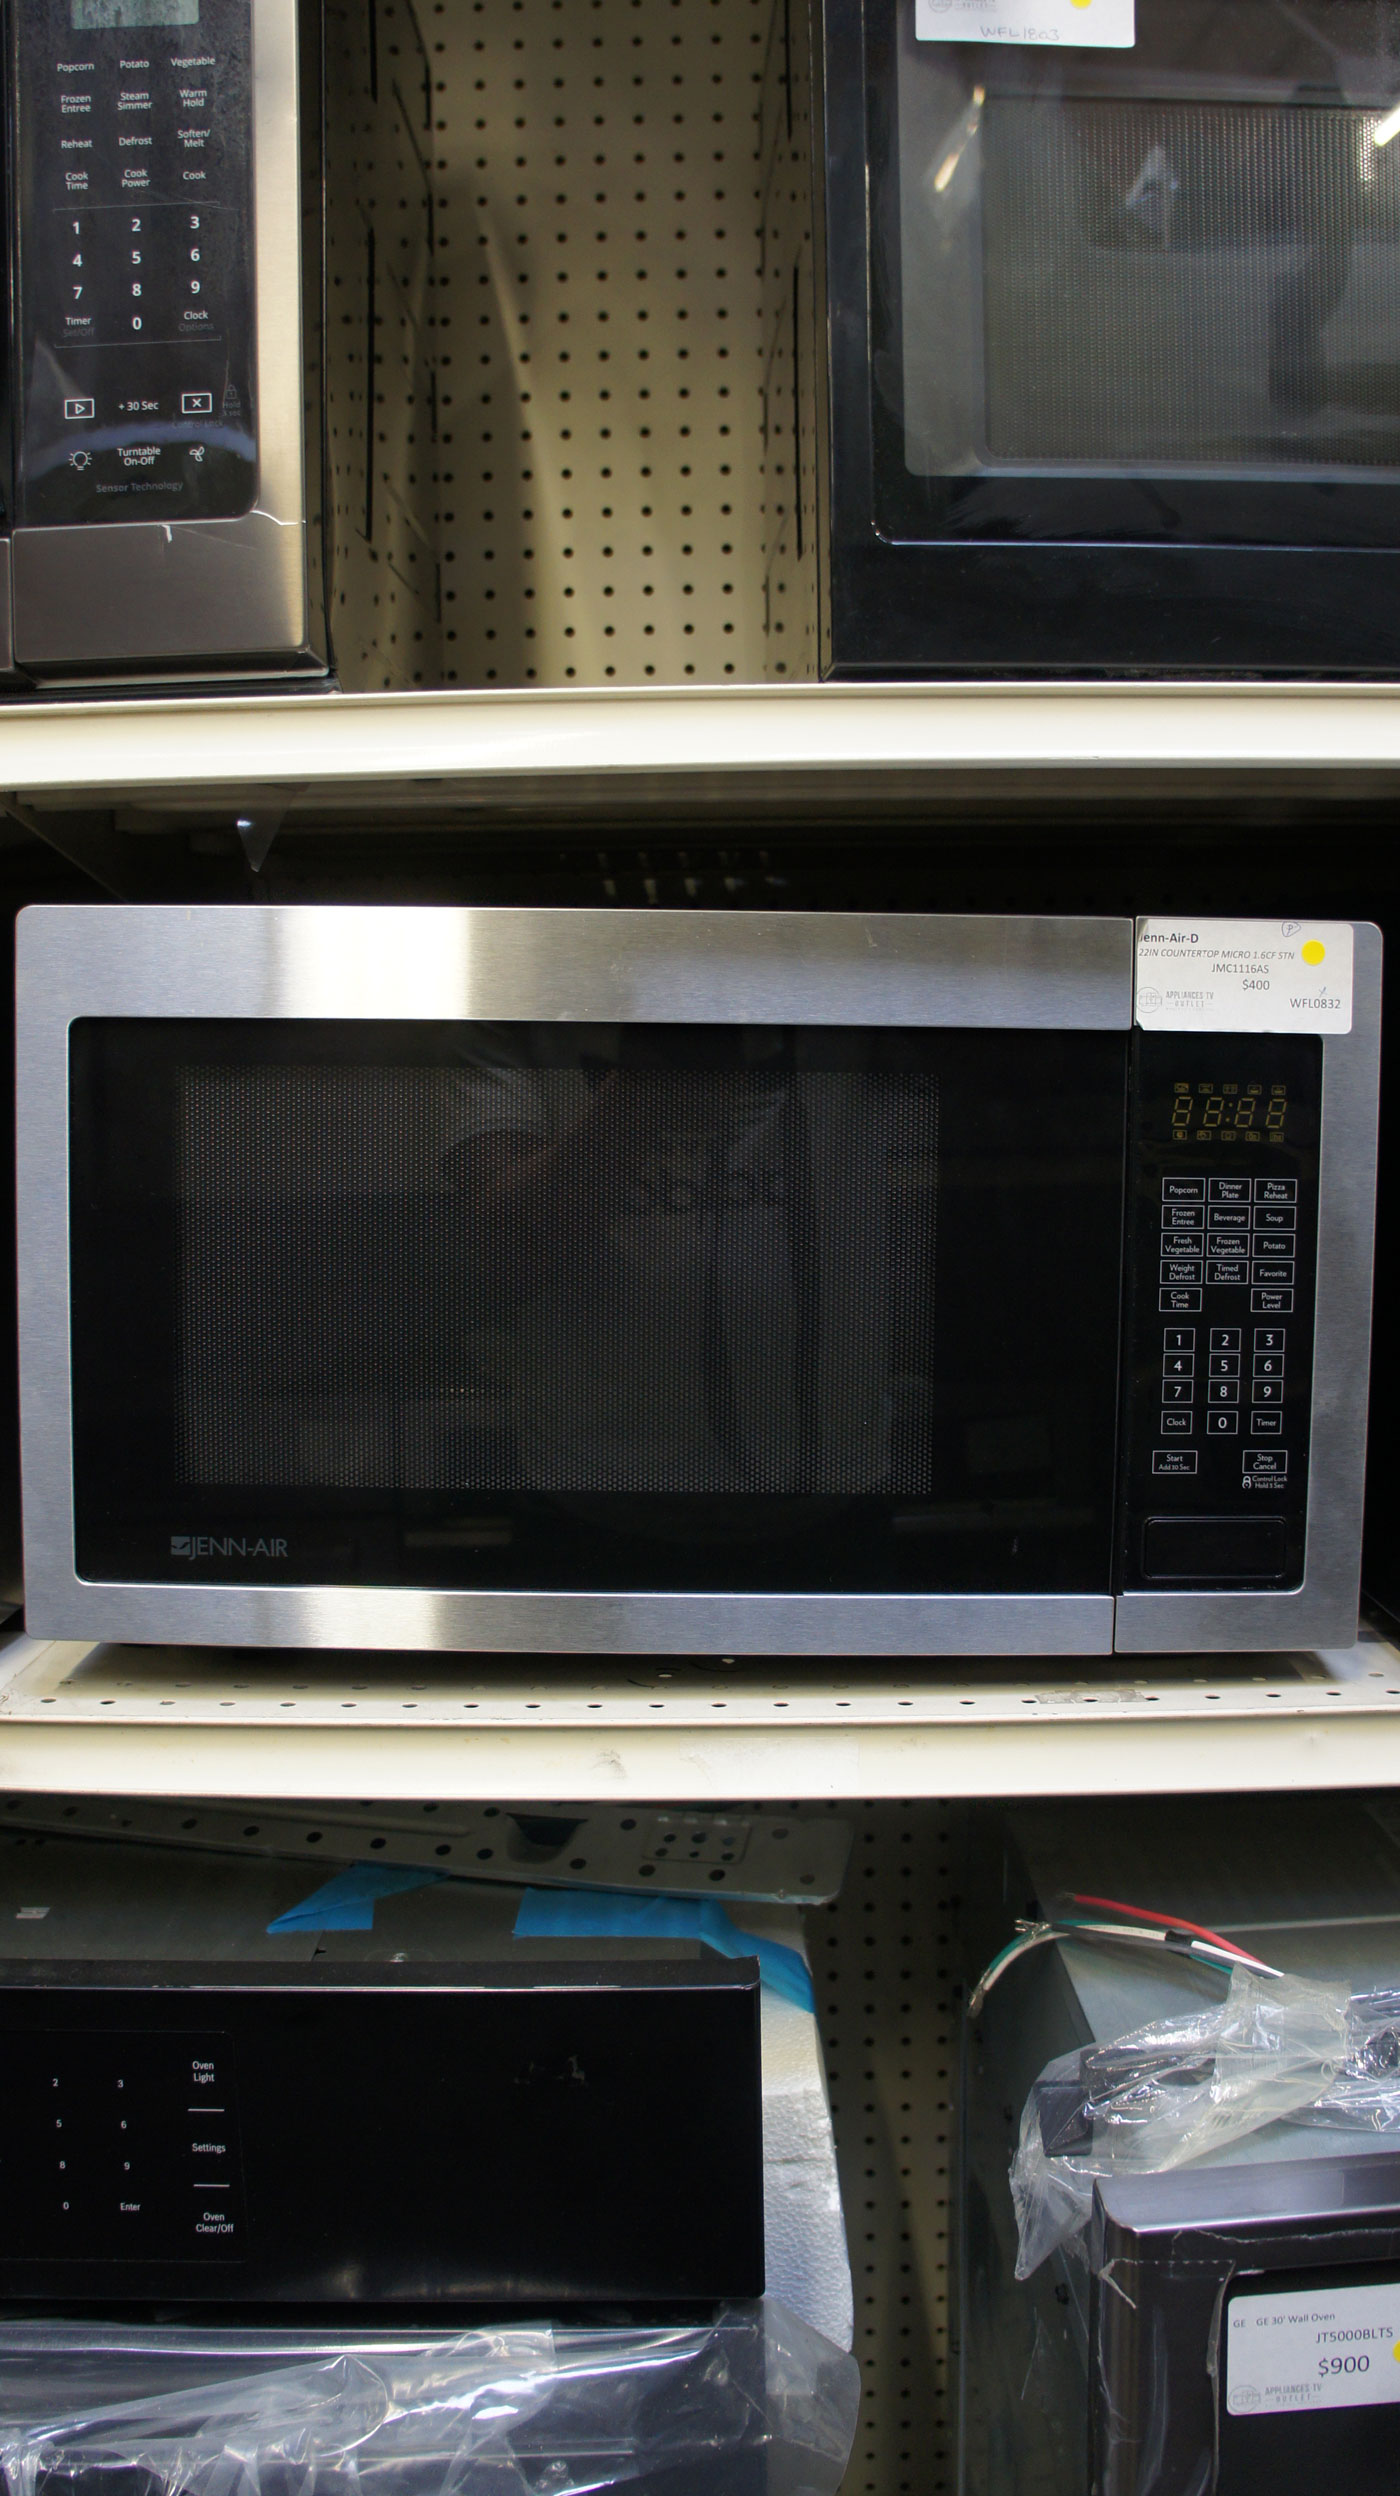 "22"" JennAir JMC1116AS 1.6 cu.ft. Capacity Microwave Oven"